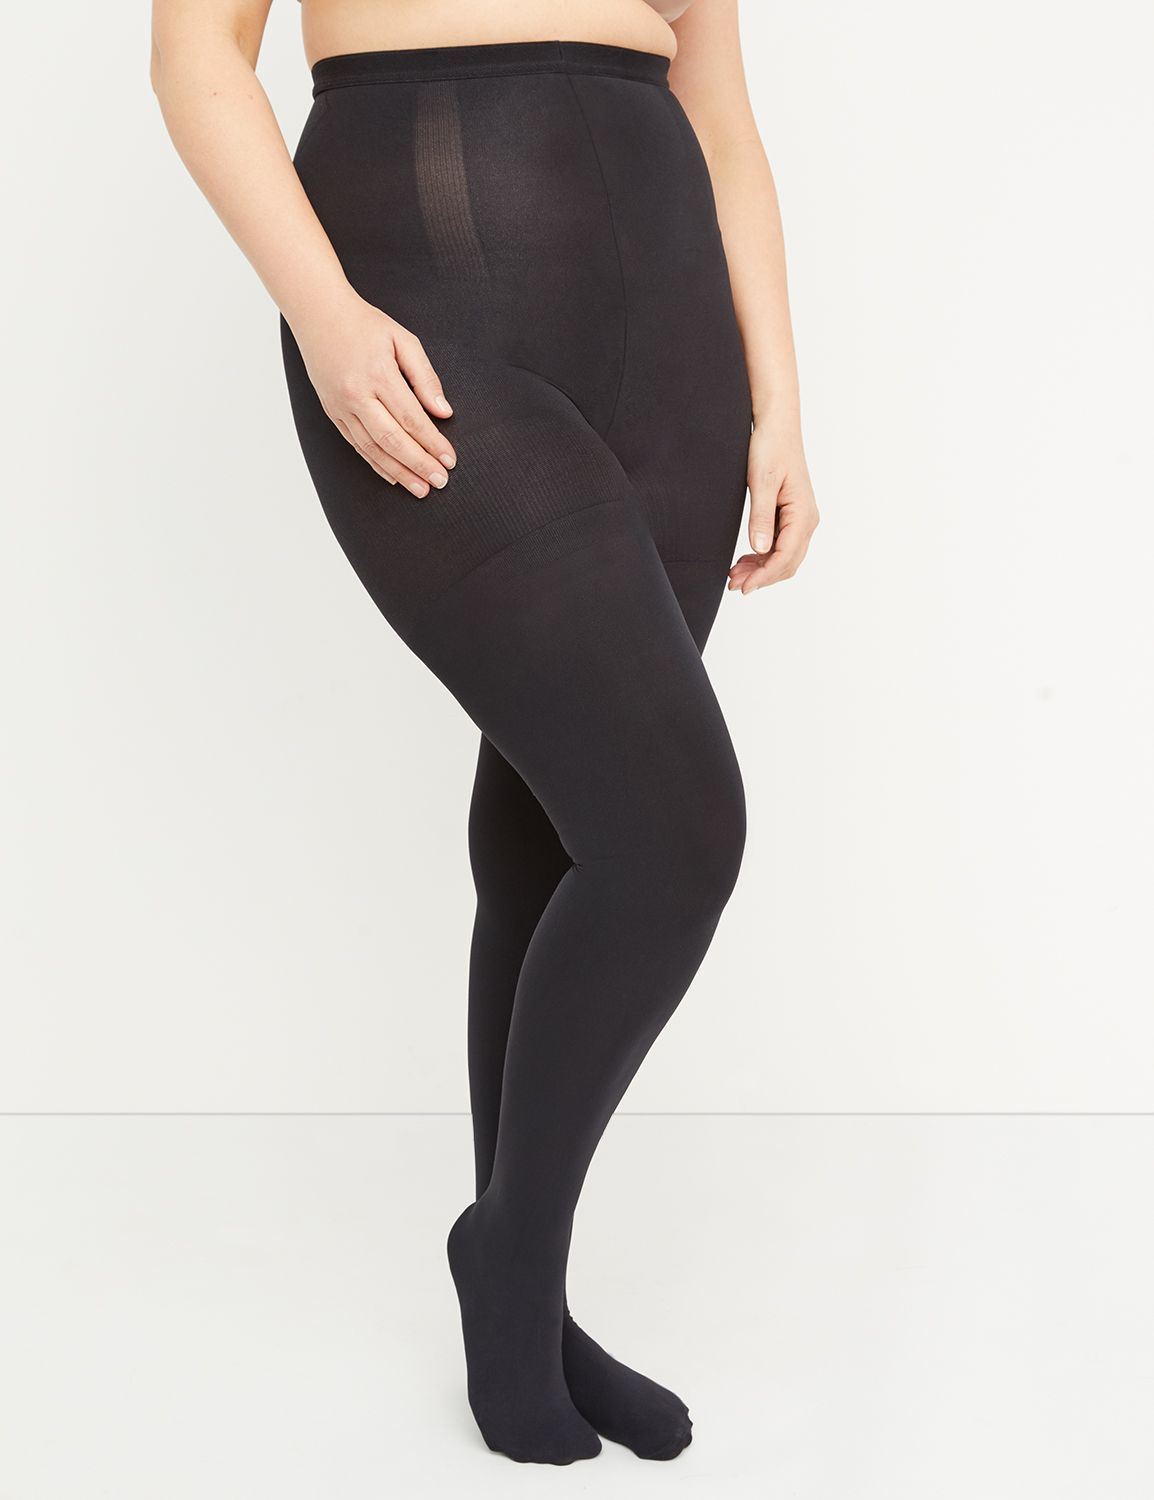 19a006686 Shaping Tights - Opaque